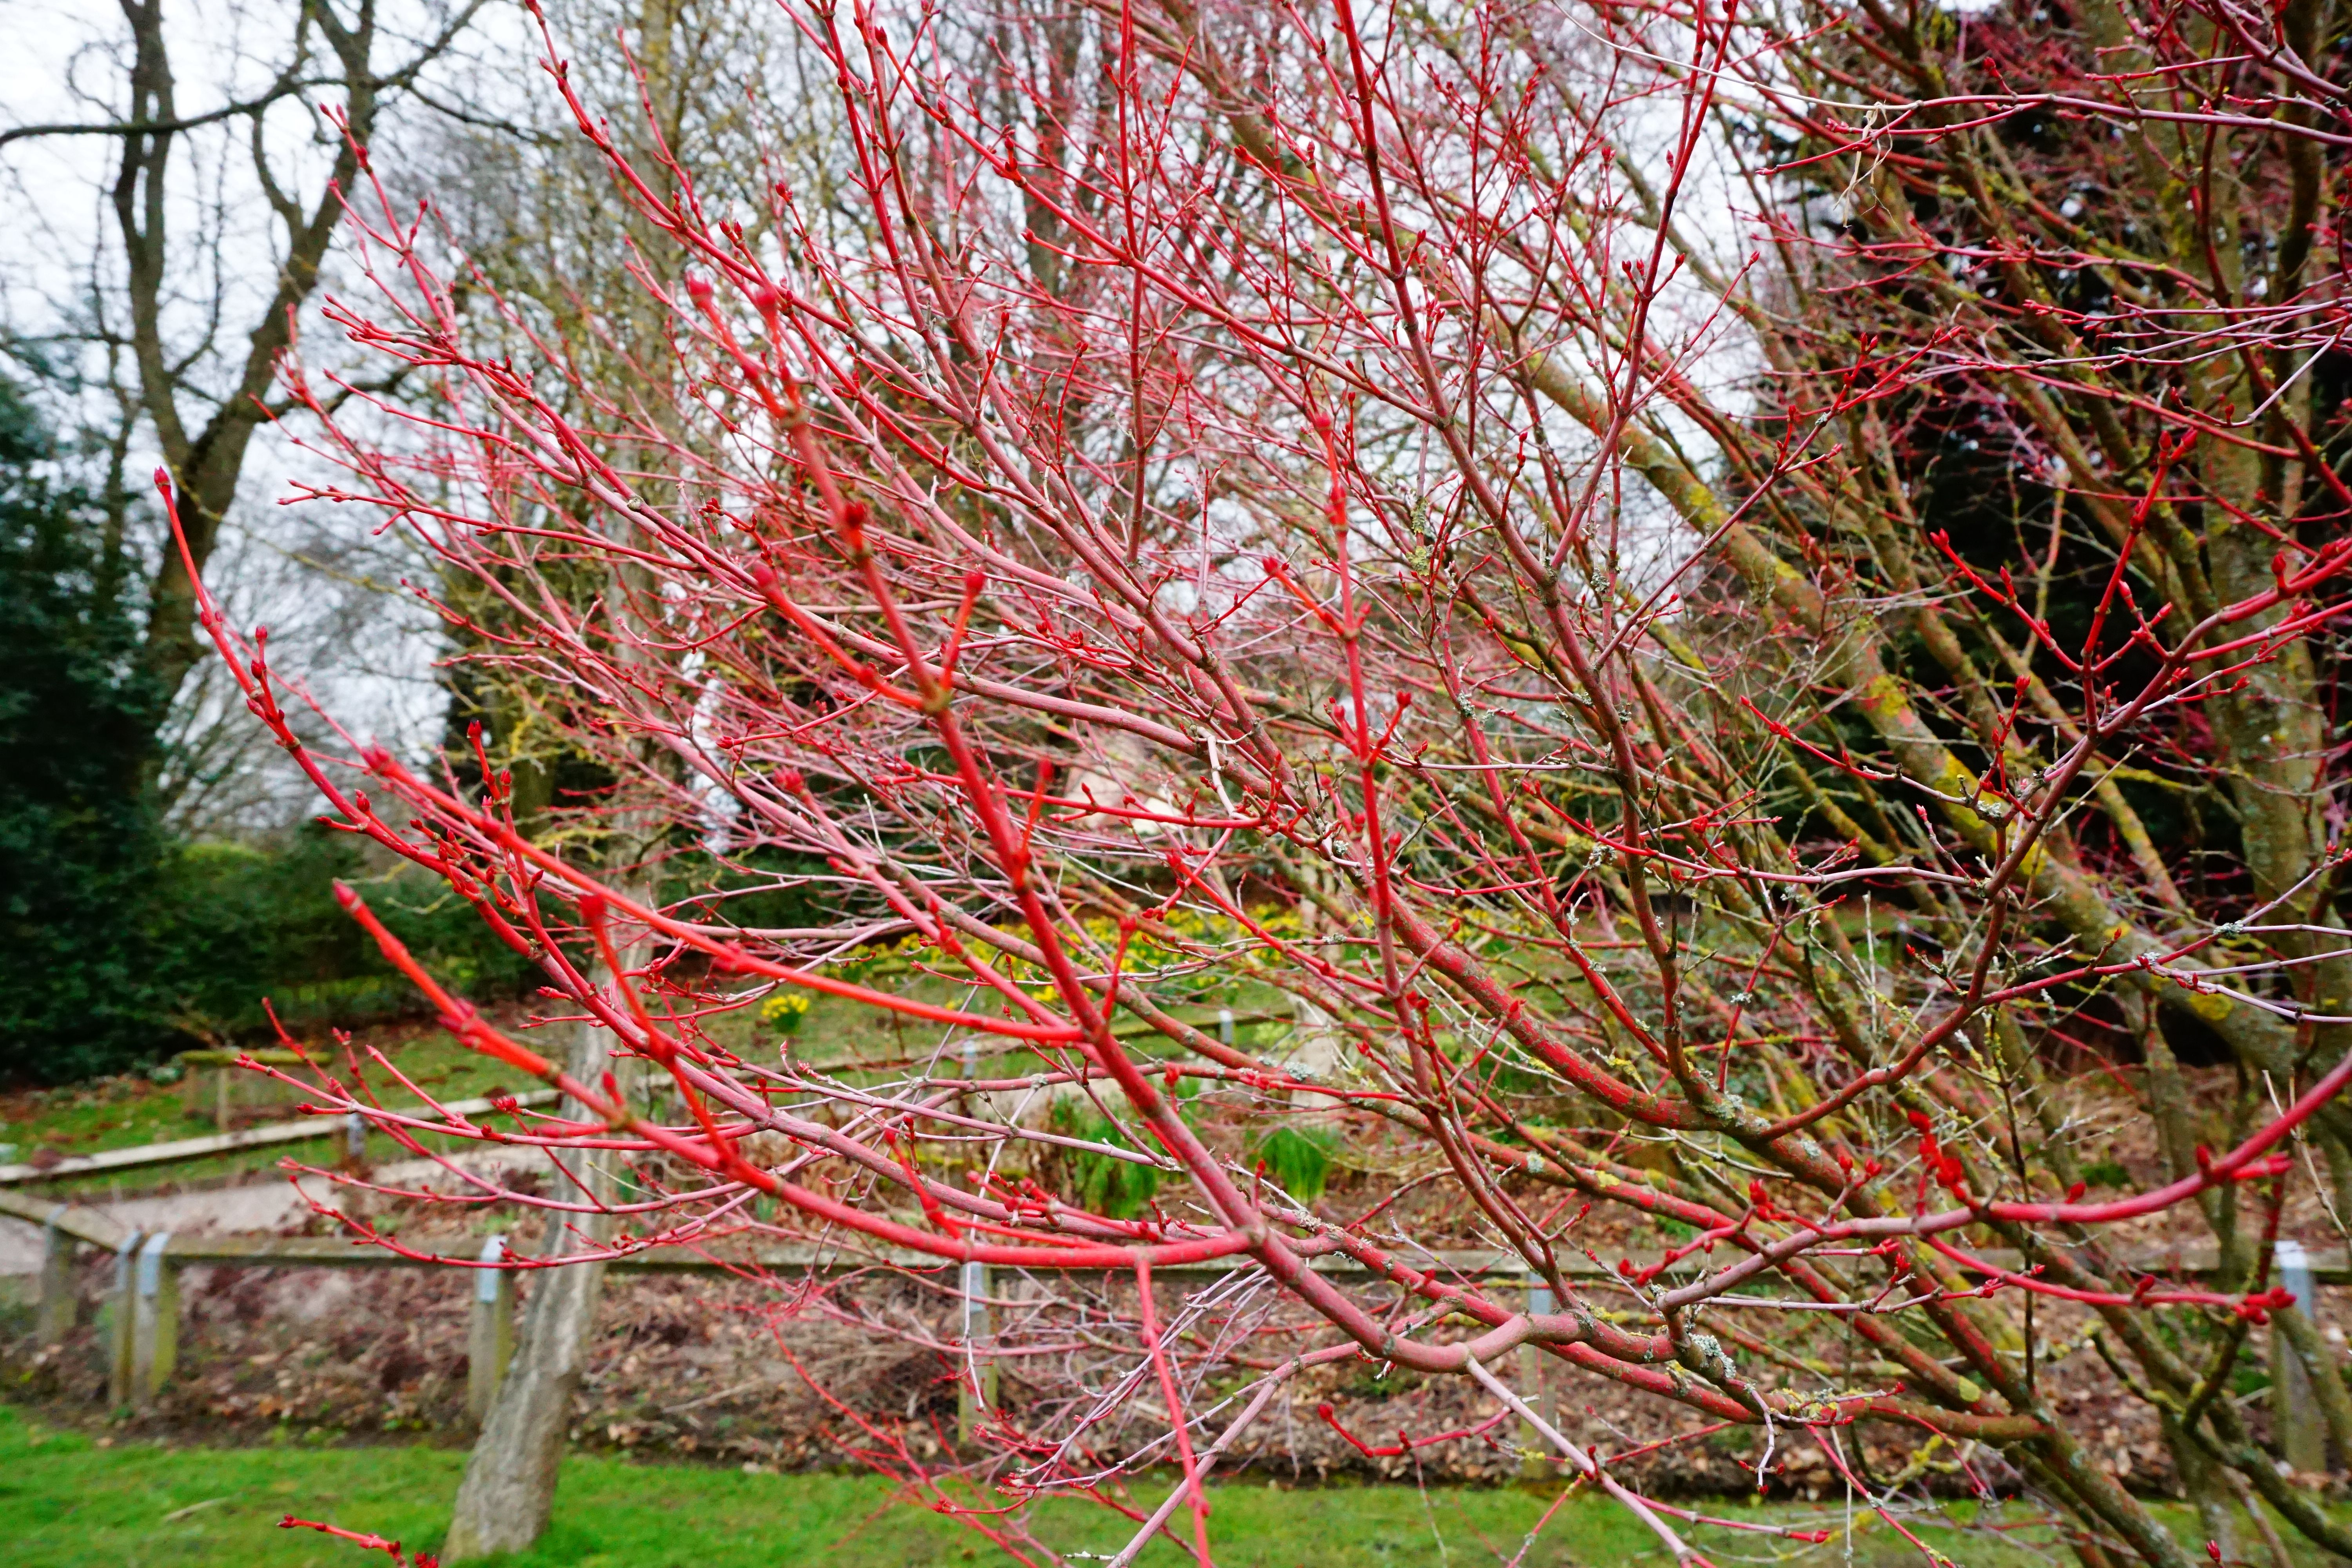 The bright red stems of Acer Palmatum Sangu Kaku. Photo by Alison ...